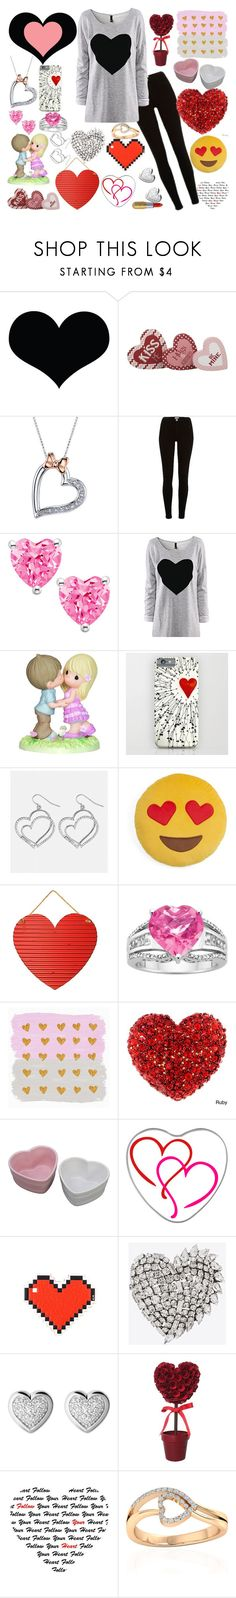 """Hearts"" by zelephant ❤ liked on Polyvore featuring Brika, Disney, River Island, Precious Moments, Avenue, Throwboy, Anya Hindmarch, Yves Saint Laurent, Links of London and Winky Lux"